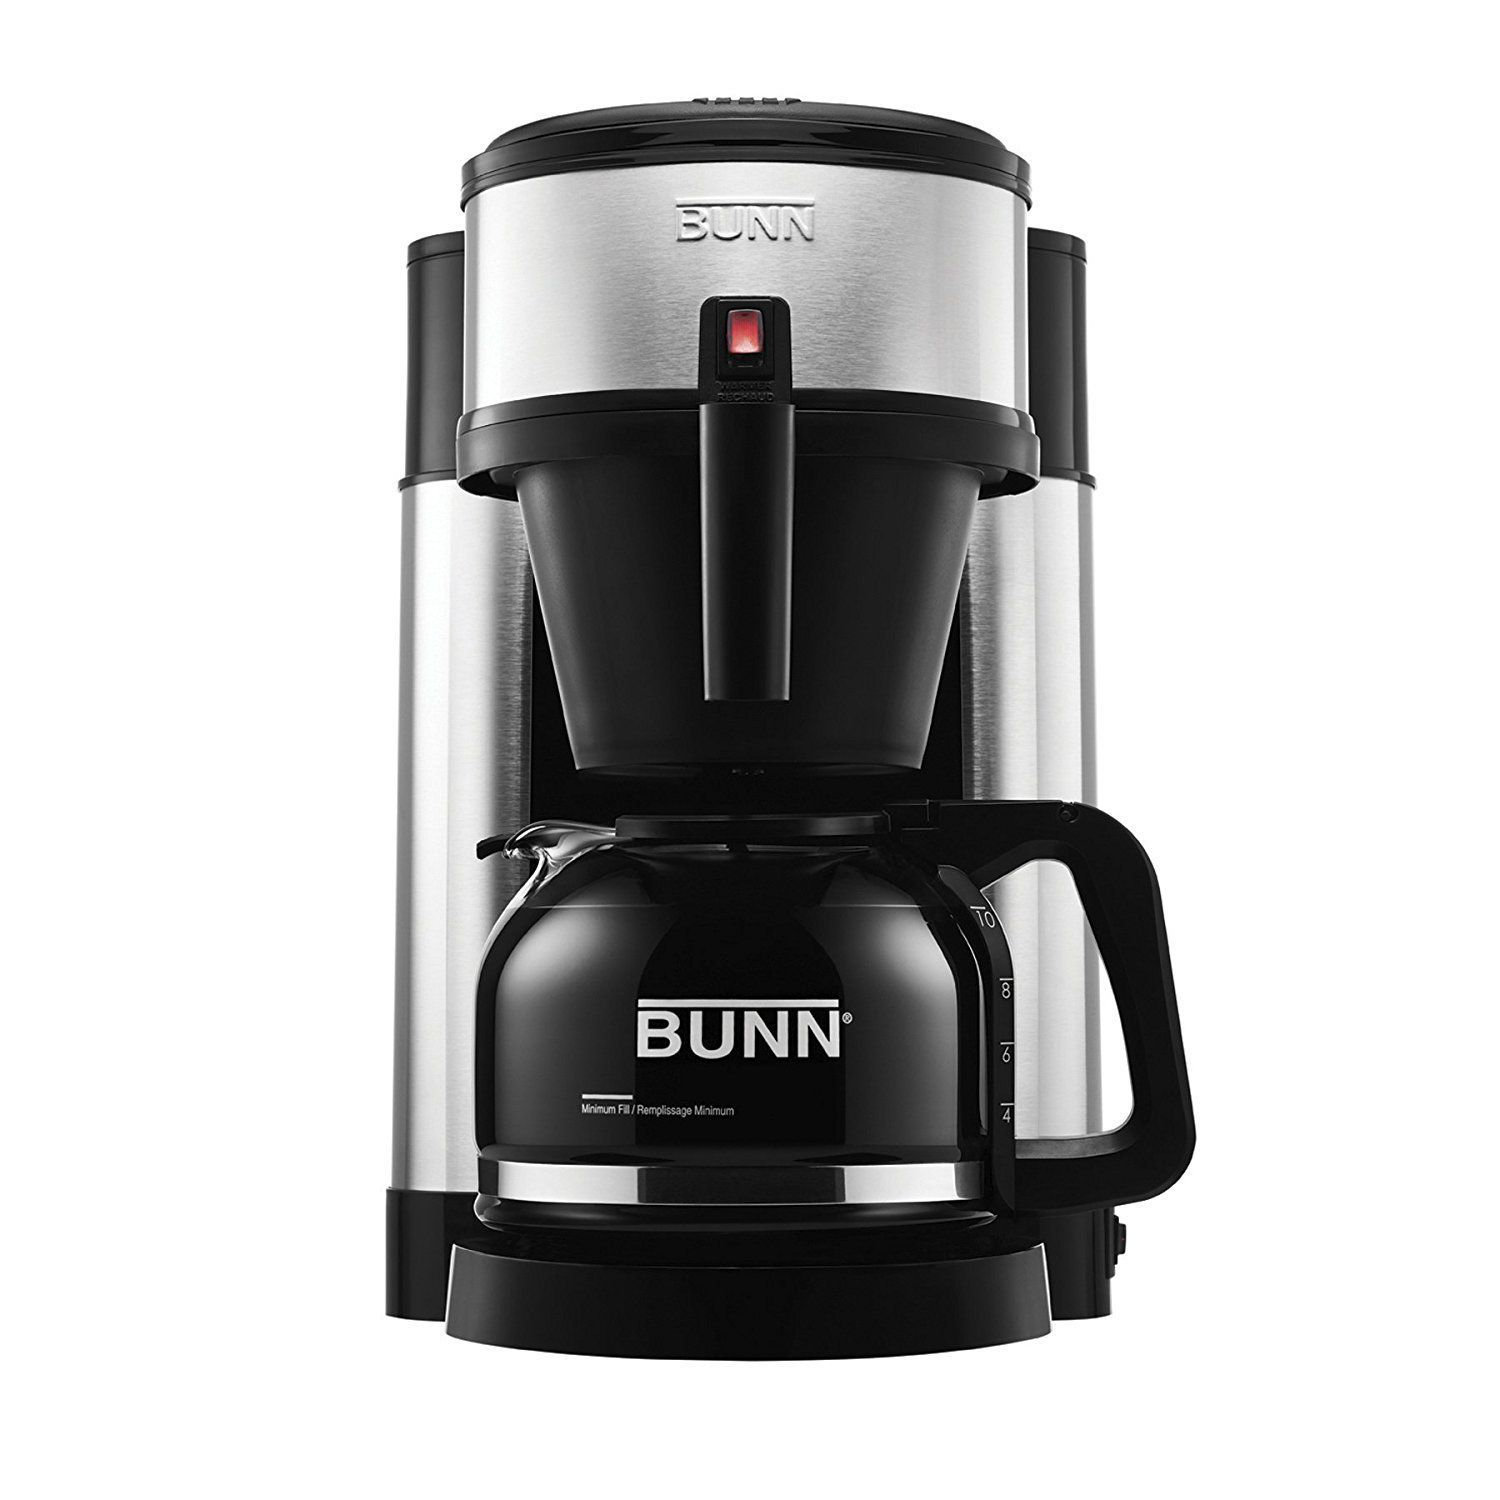 Bunn nhs velocity brew cup home coffee brewer coffeebrewer